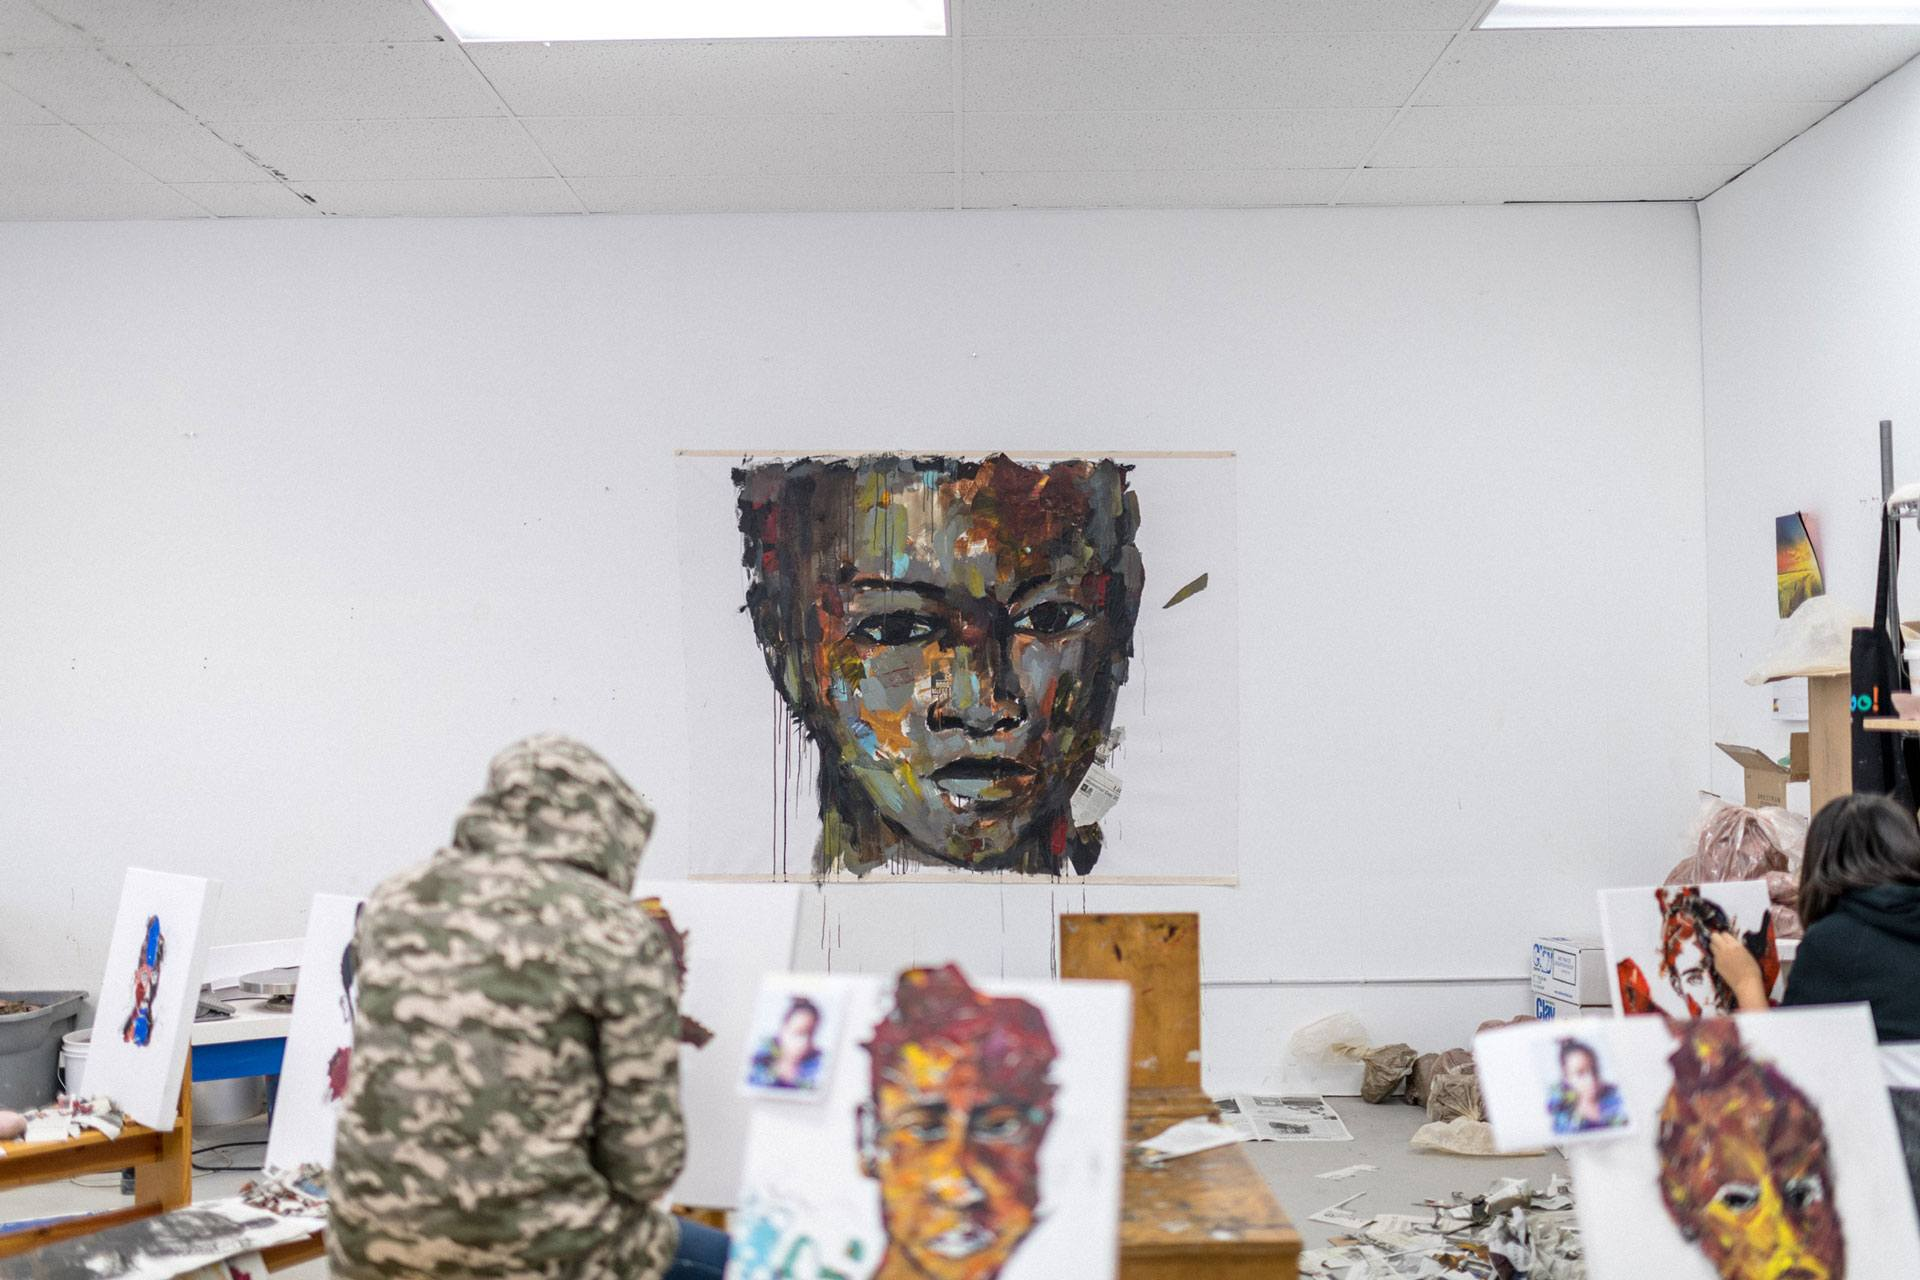 A large multimedia portrait painting in progress displayed in front of an art class